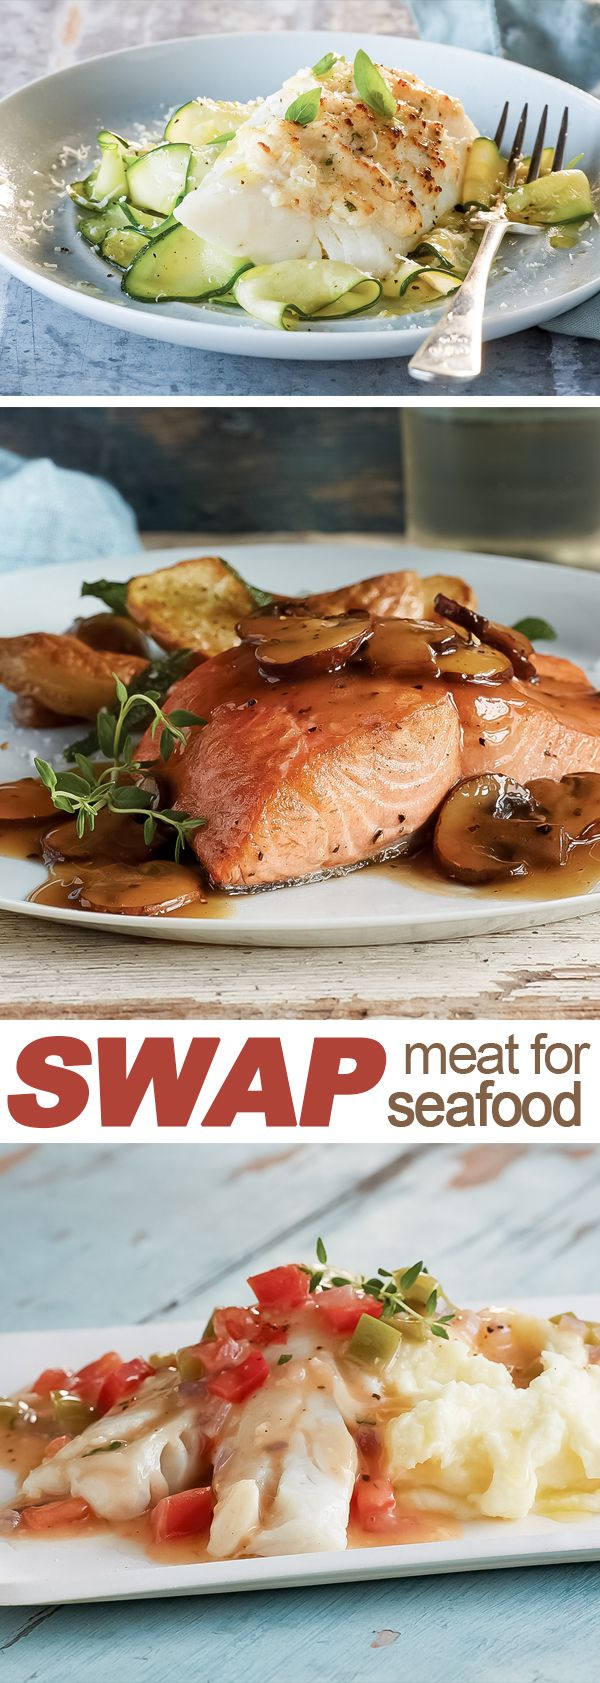 Replace ho-hum with yum and SWAP Meat with Alaska seafood.